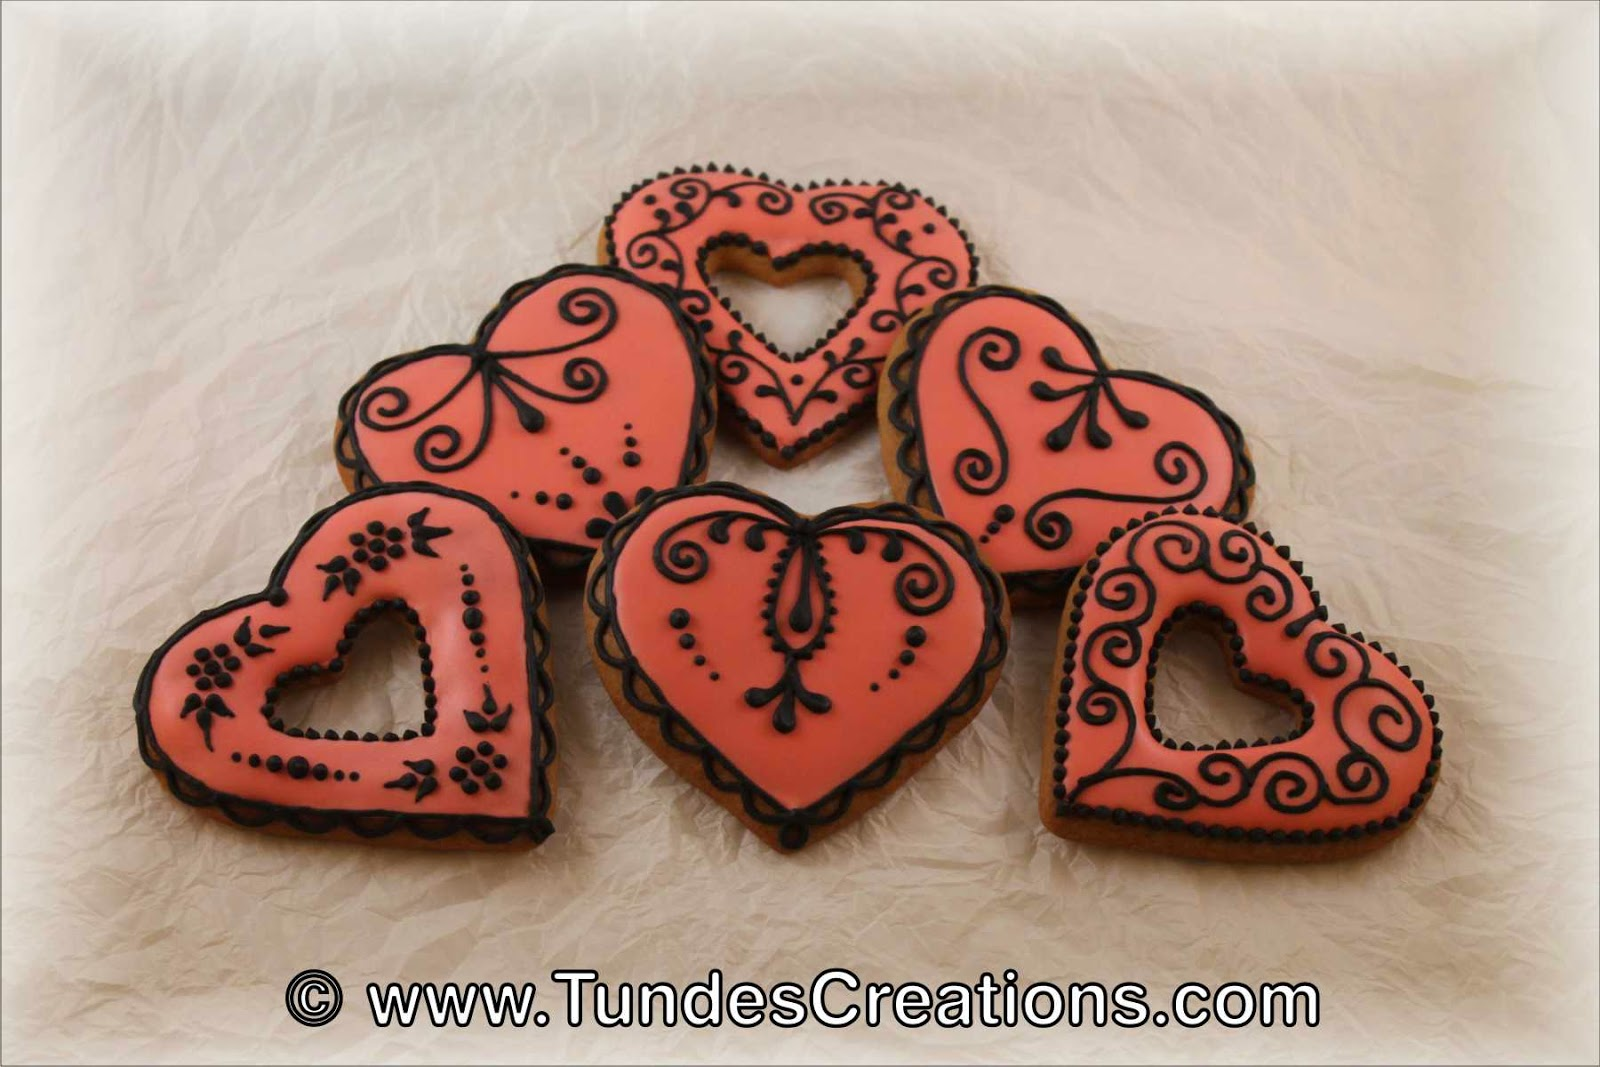 Pink and black traditional Valentine's gingerbread hearts.